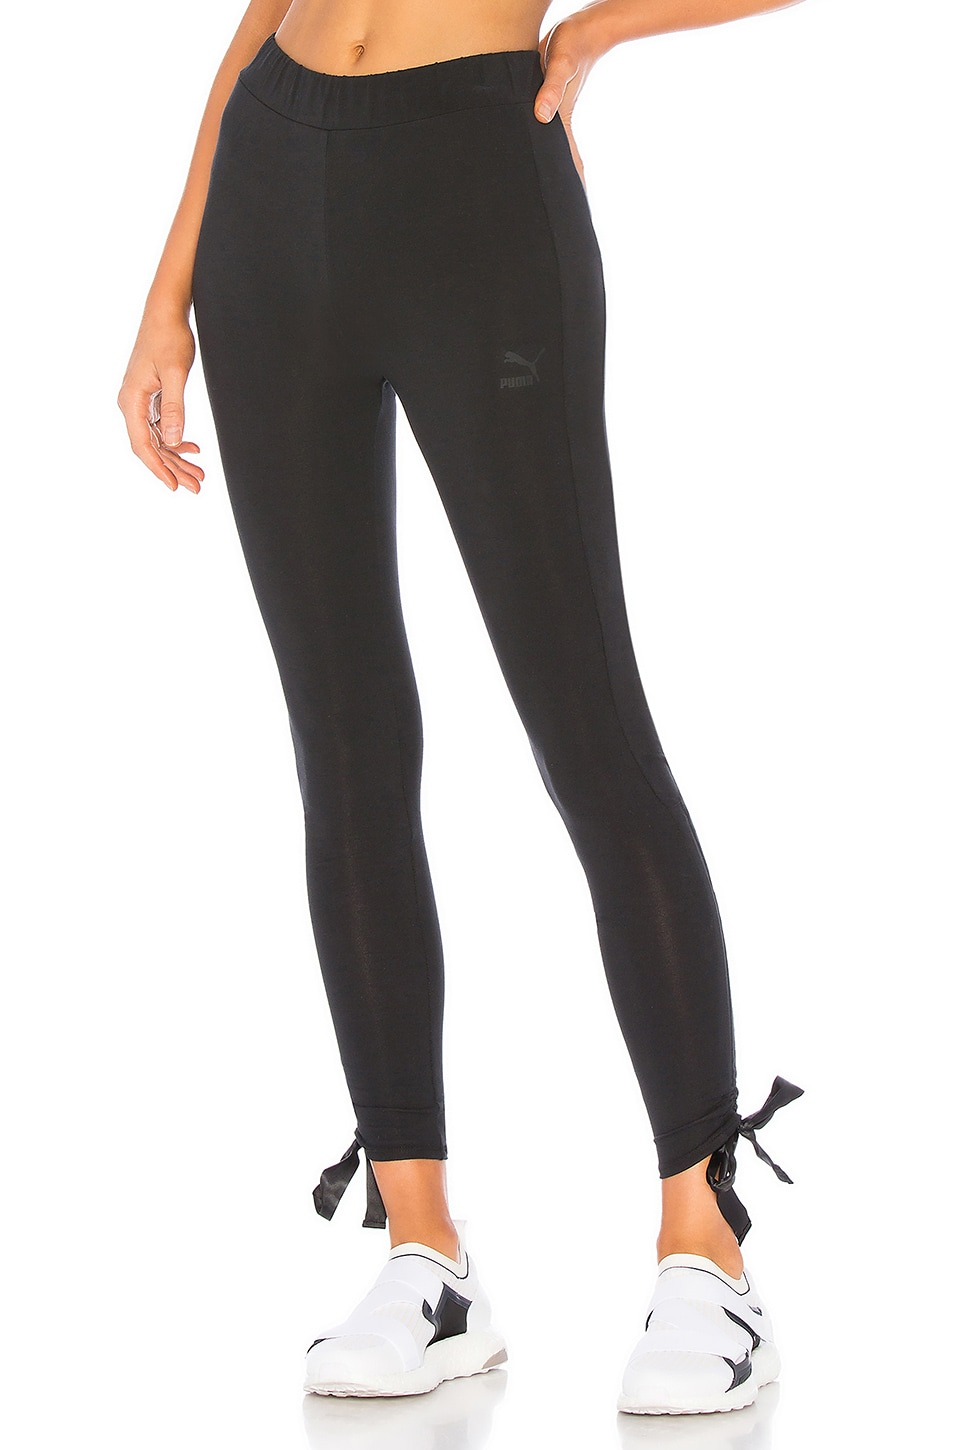 Puma Bow Legging in Cotton Black